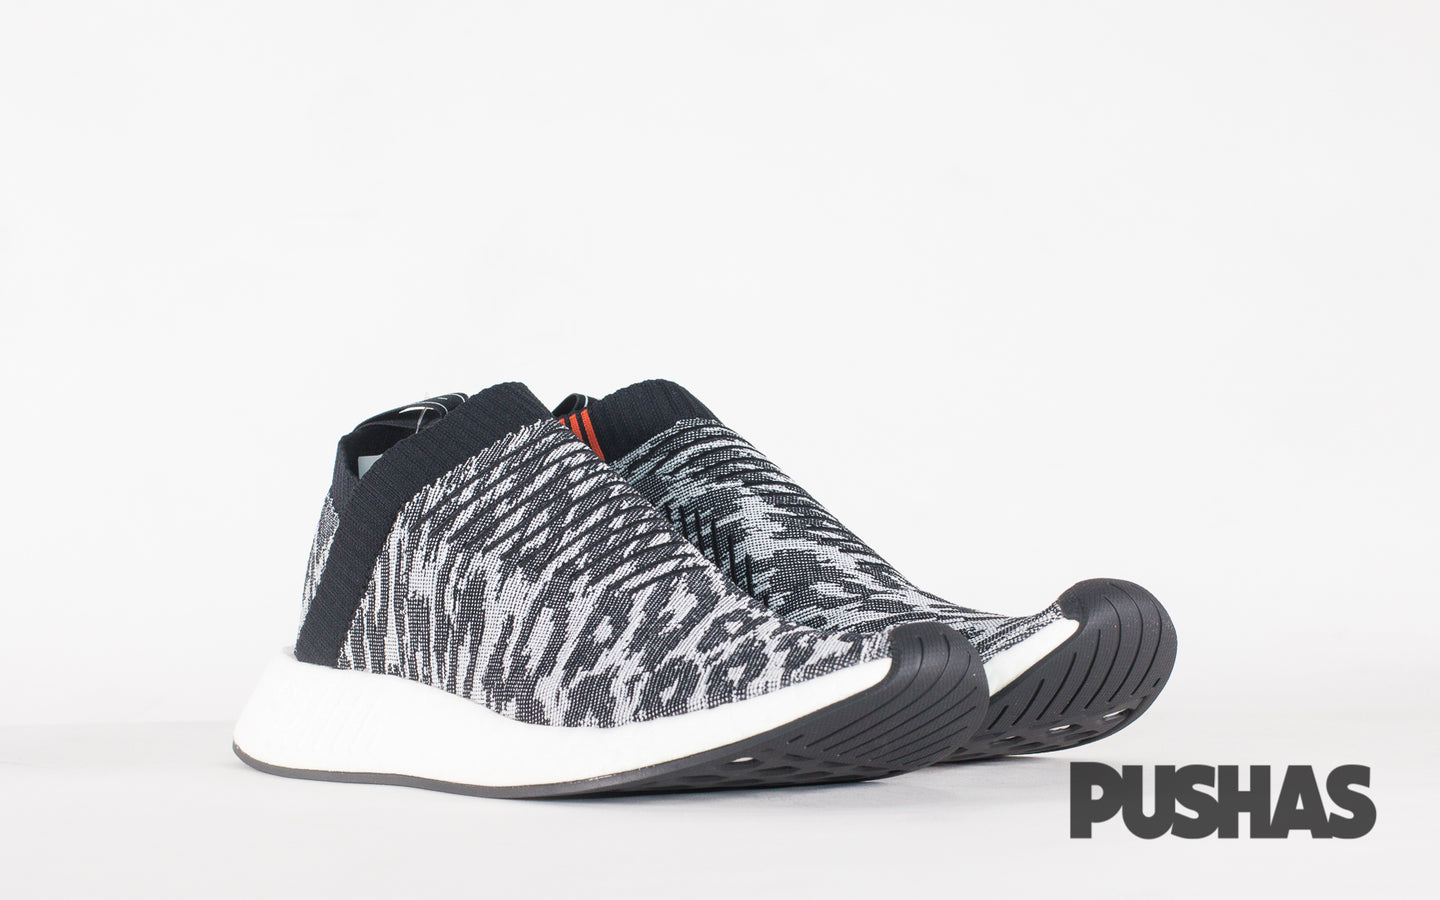 pushas-Adidas-NMD-CS2-PK-Glitch